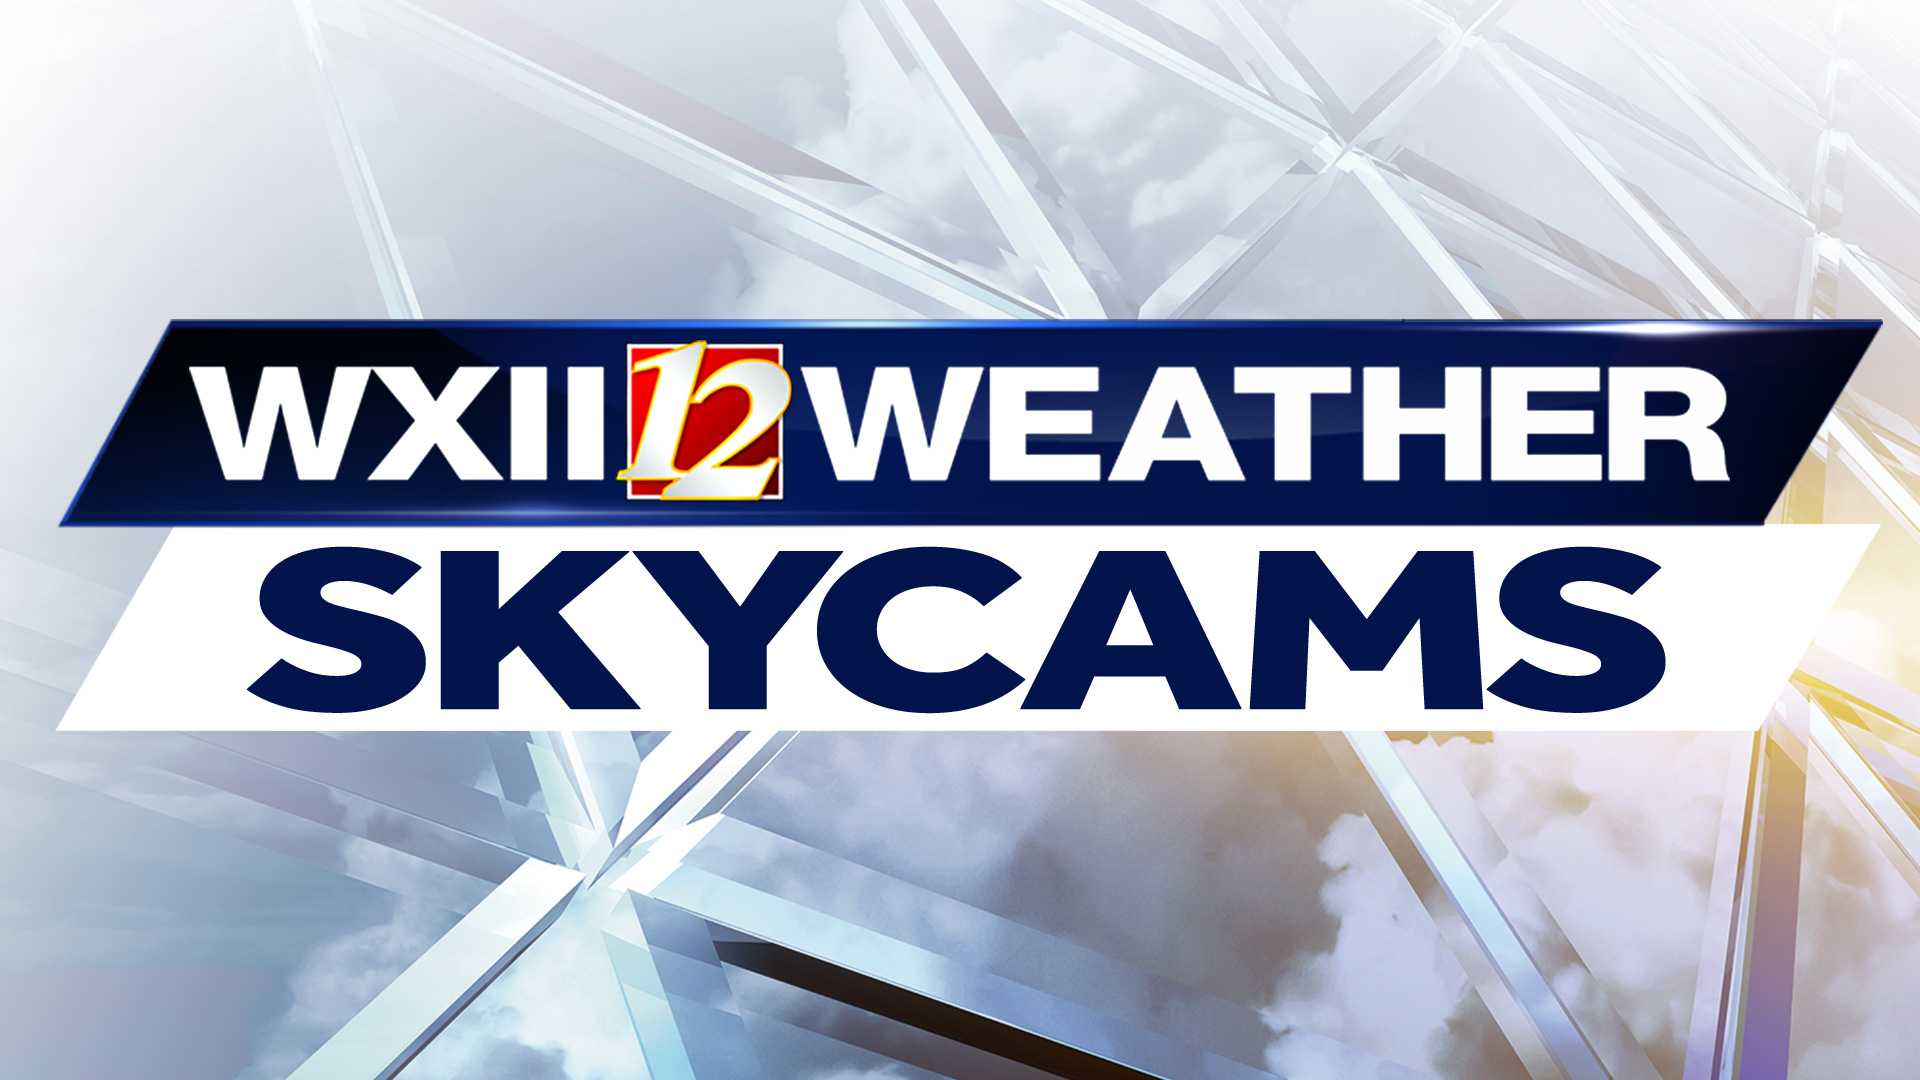 Weather Skycams | WXII 12